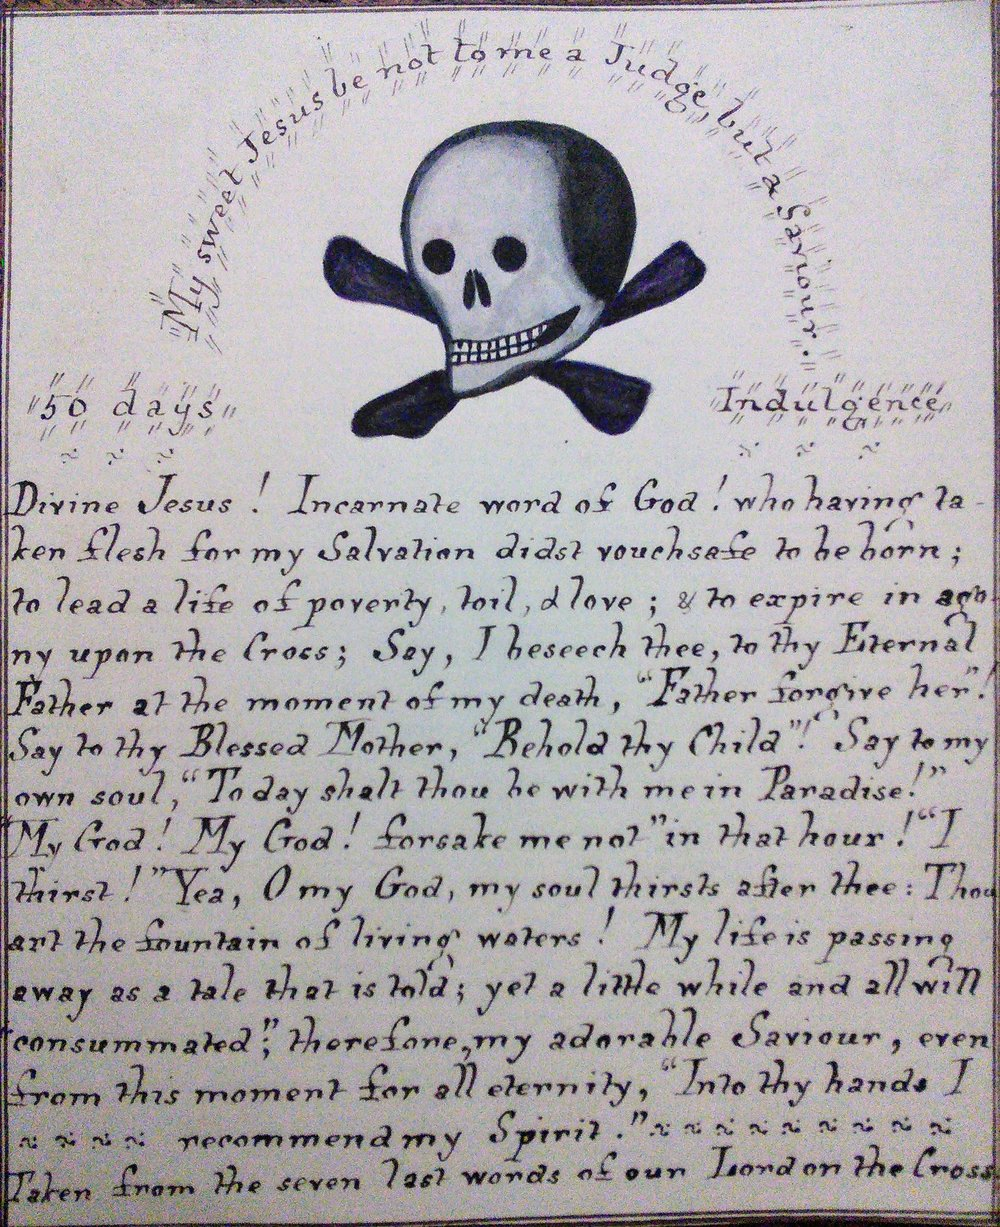 Prayer card for a happy death, based on the seven last words of Our Lord on the Cross. How spooky is the skull and crossbones - but the Victorians had a much more overt relationship with death than we do today.